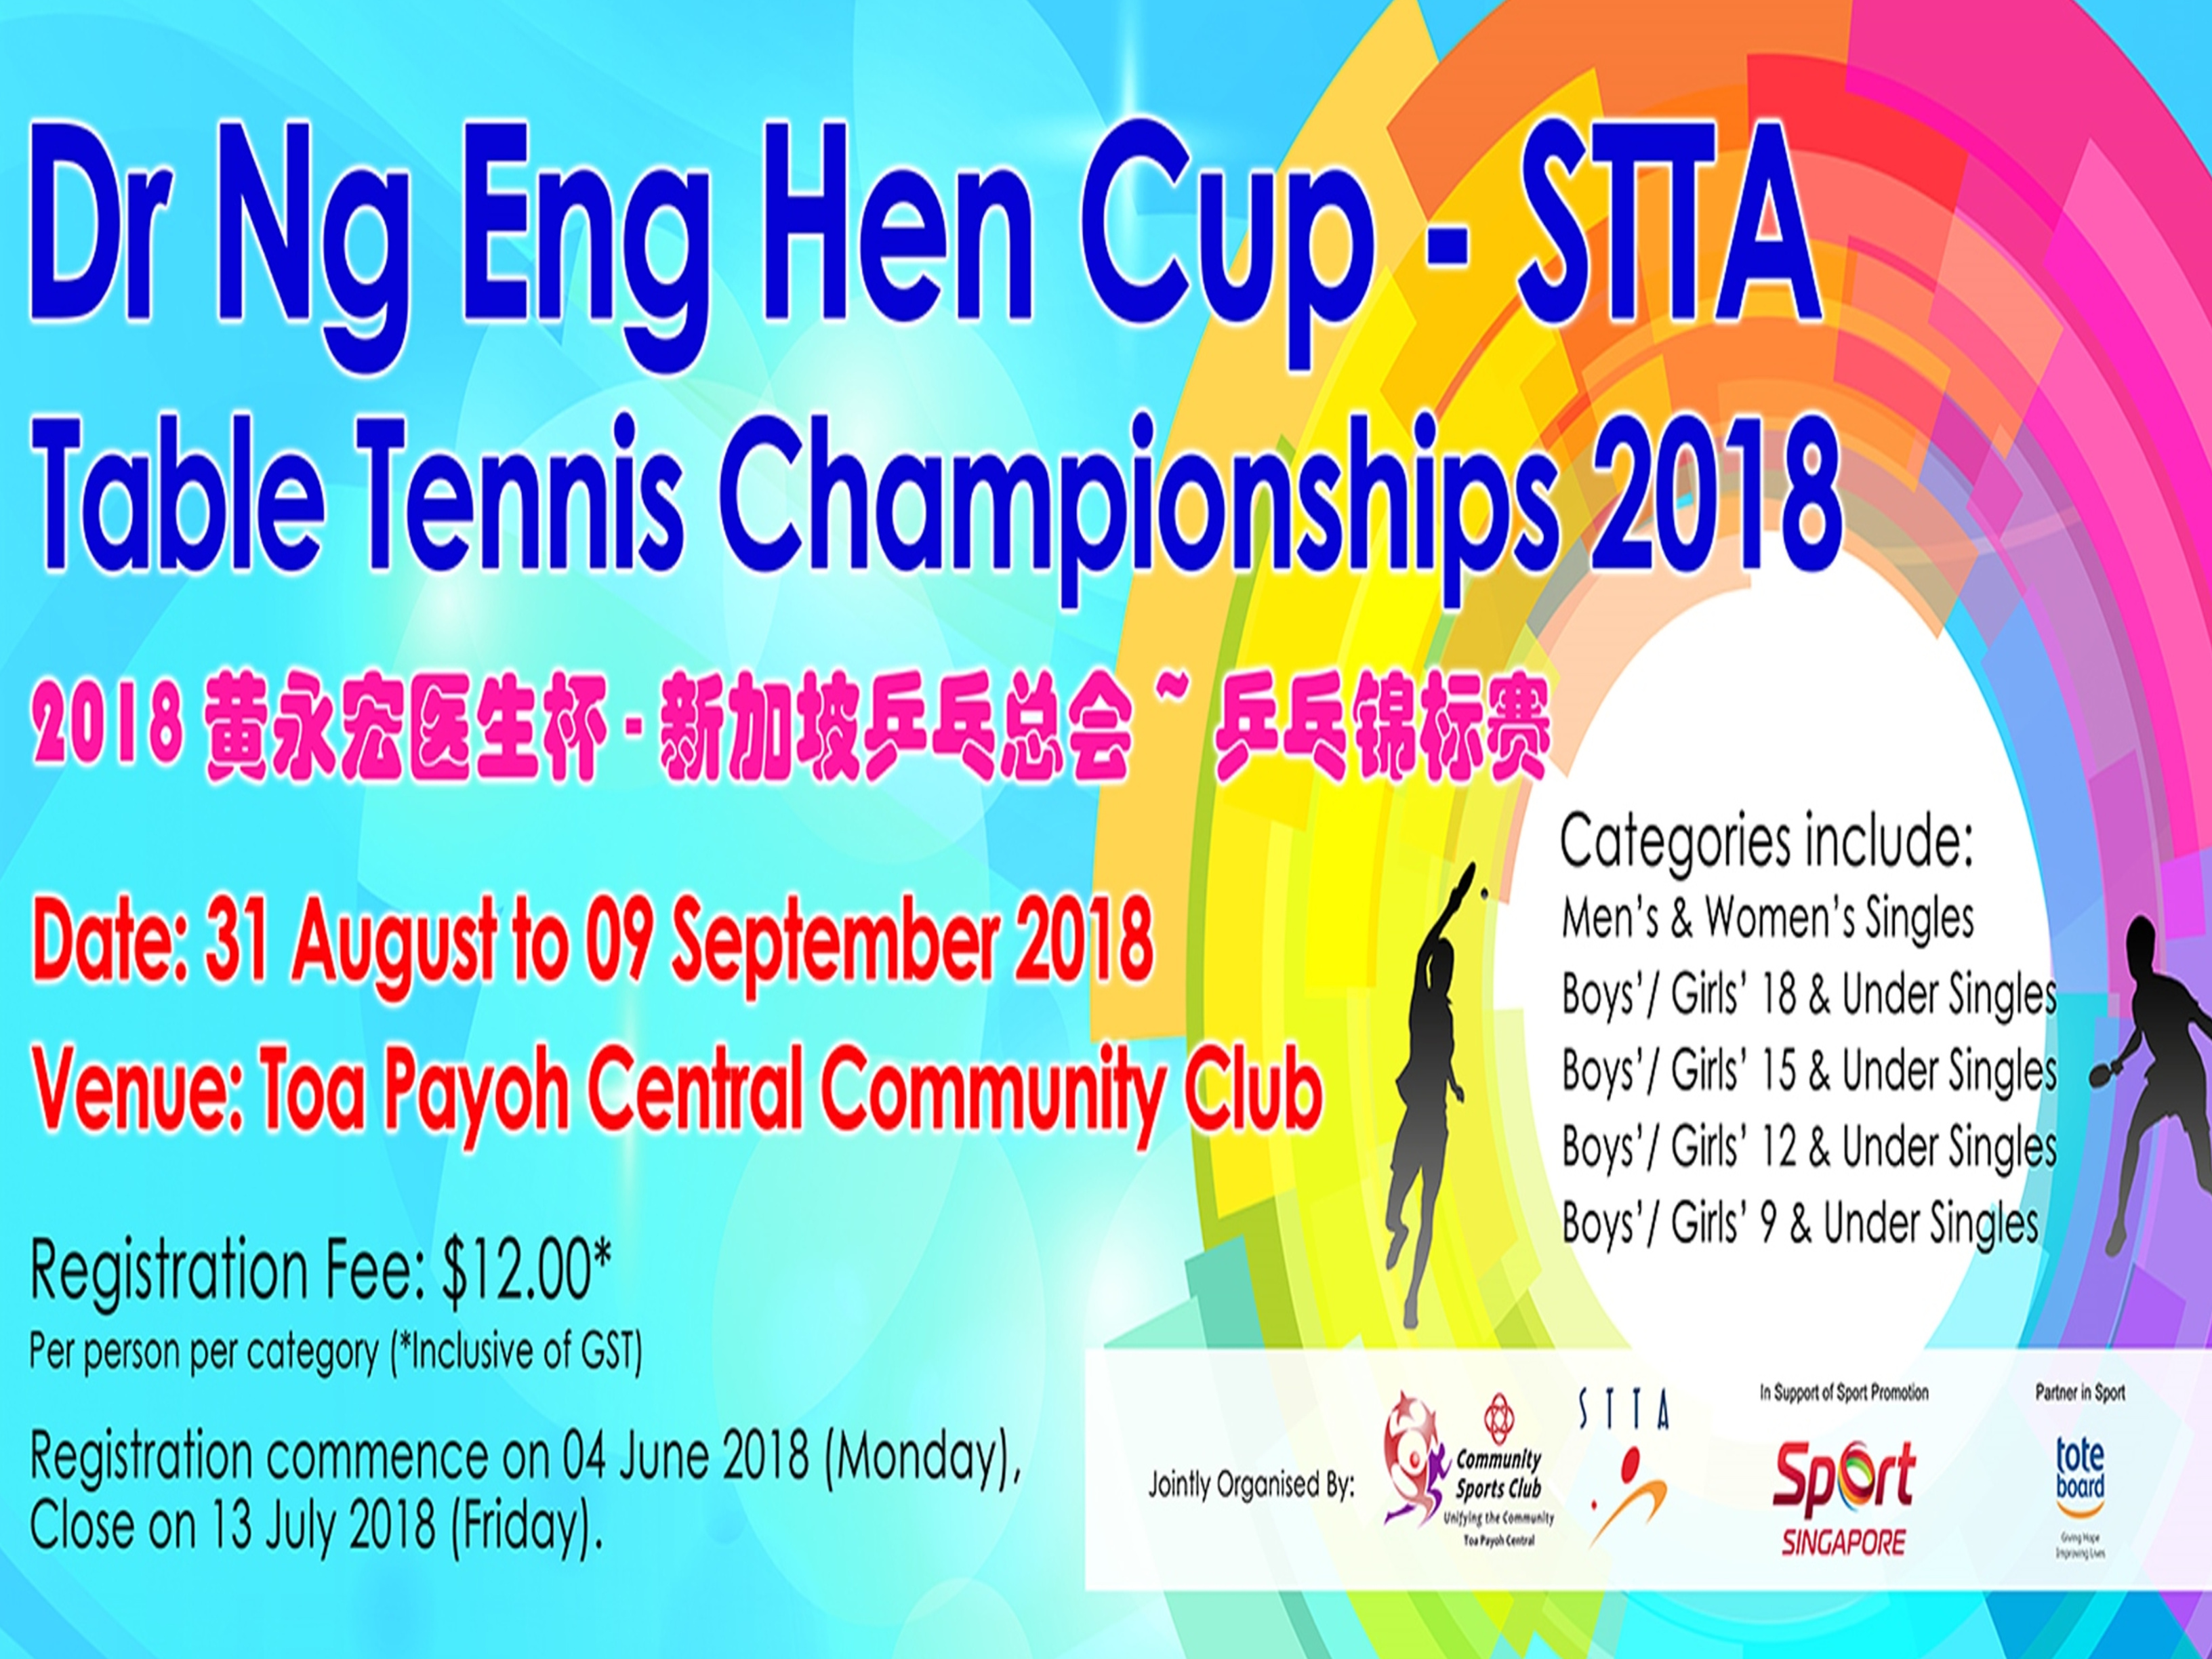 Dr Ng Eng Hen Cup-STTA Table Tennis Championships 2018